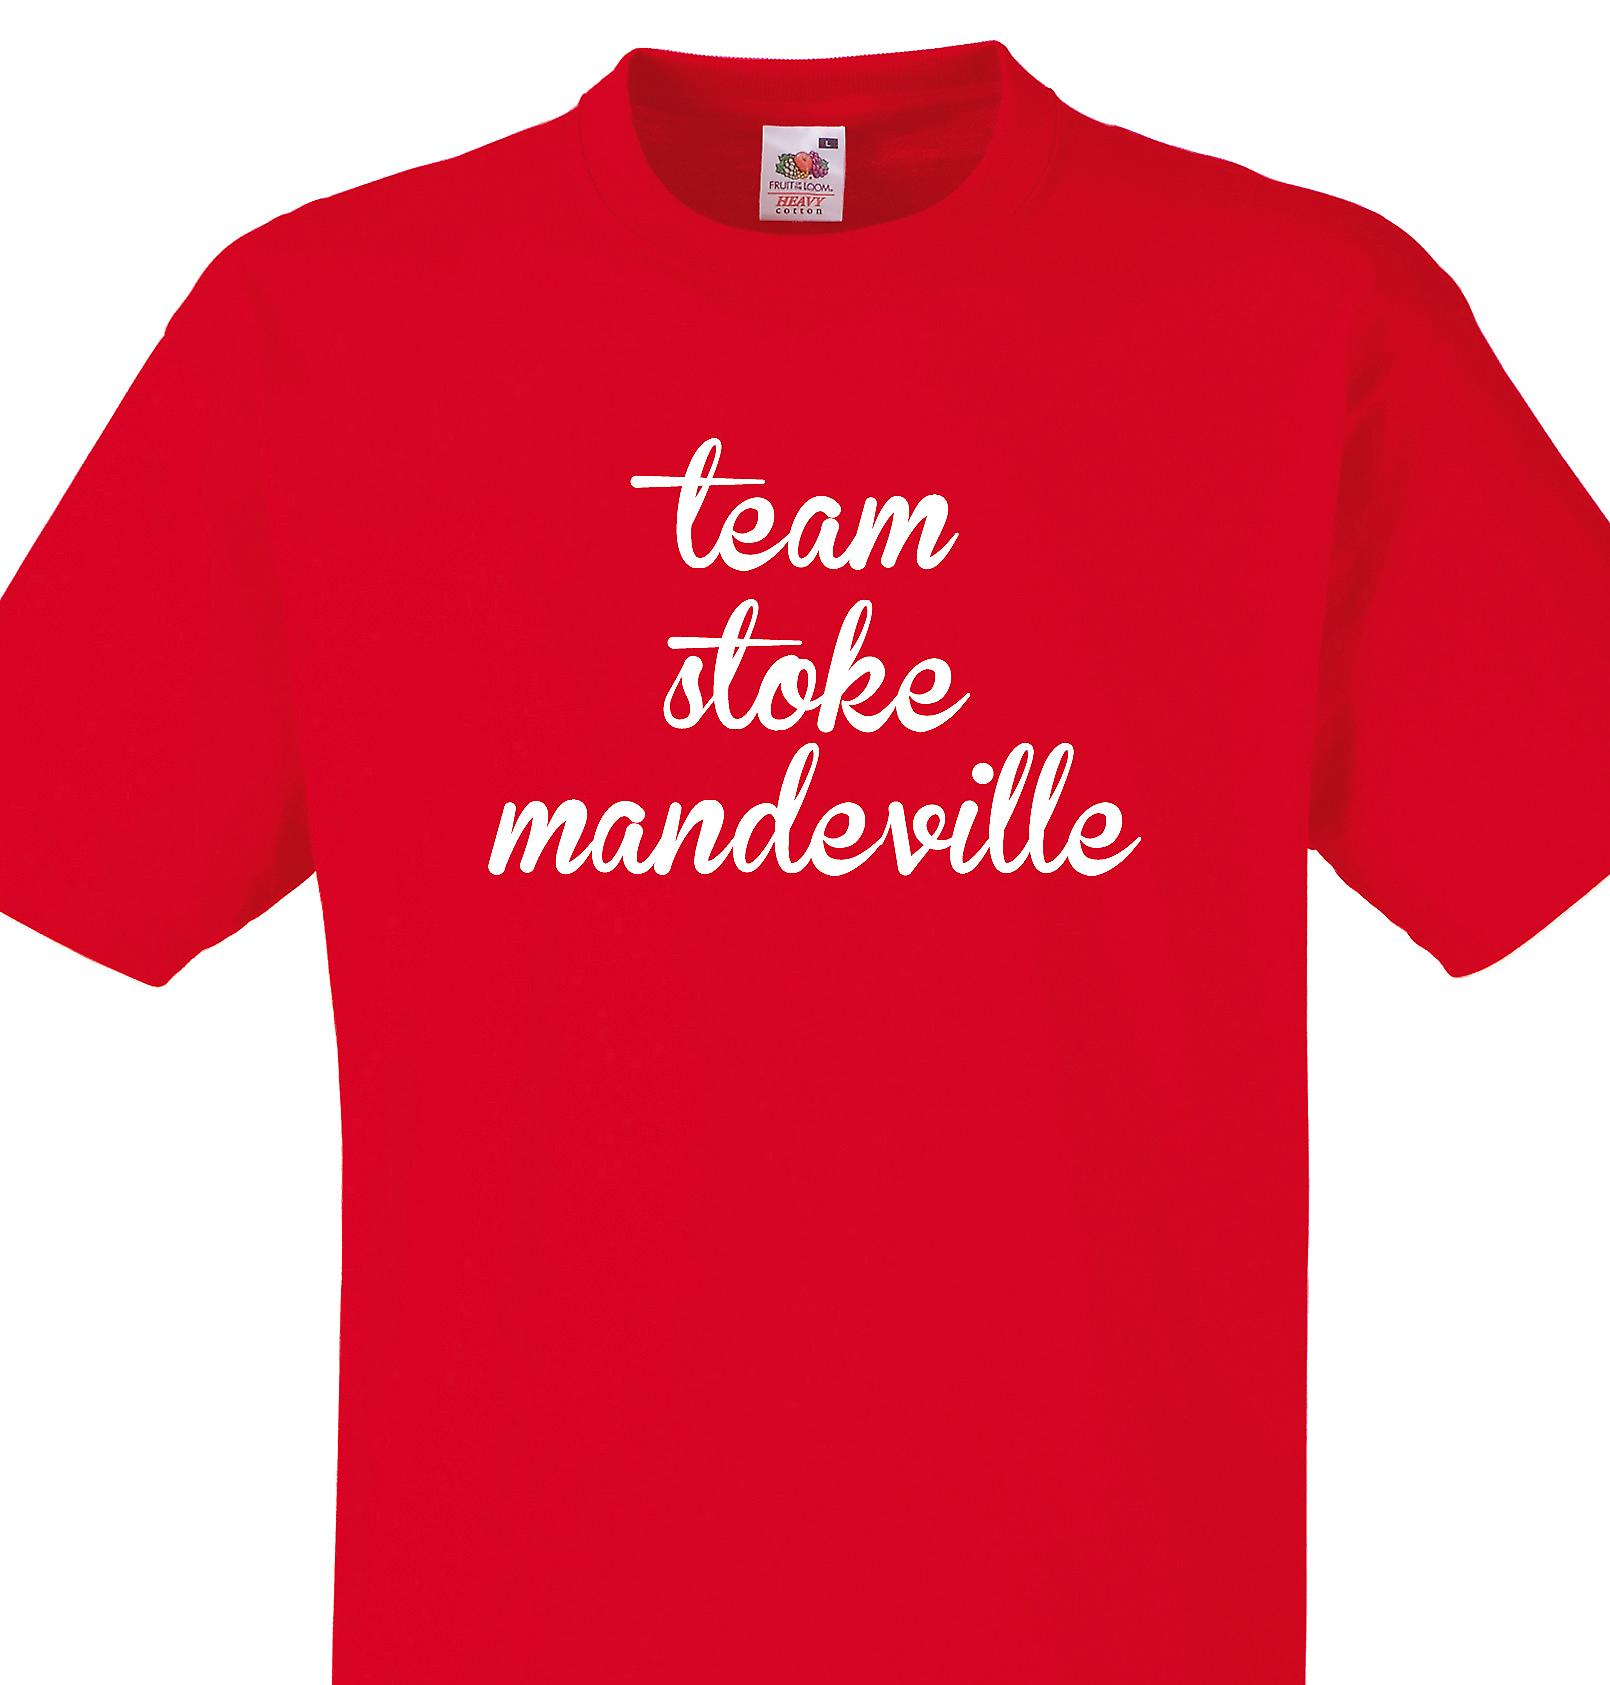 Team Stoke mandeville Red T shirt